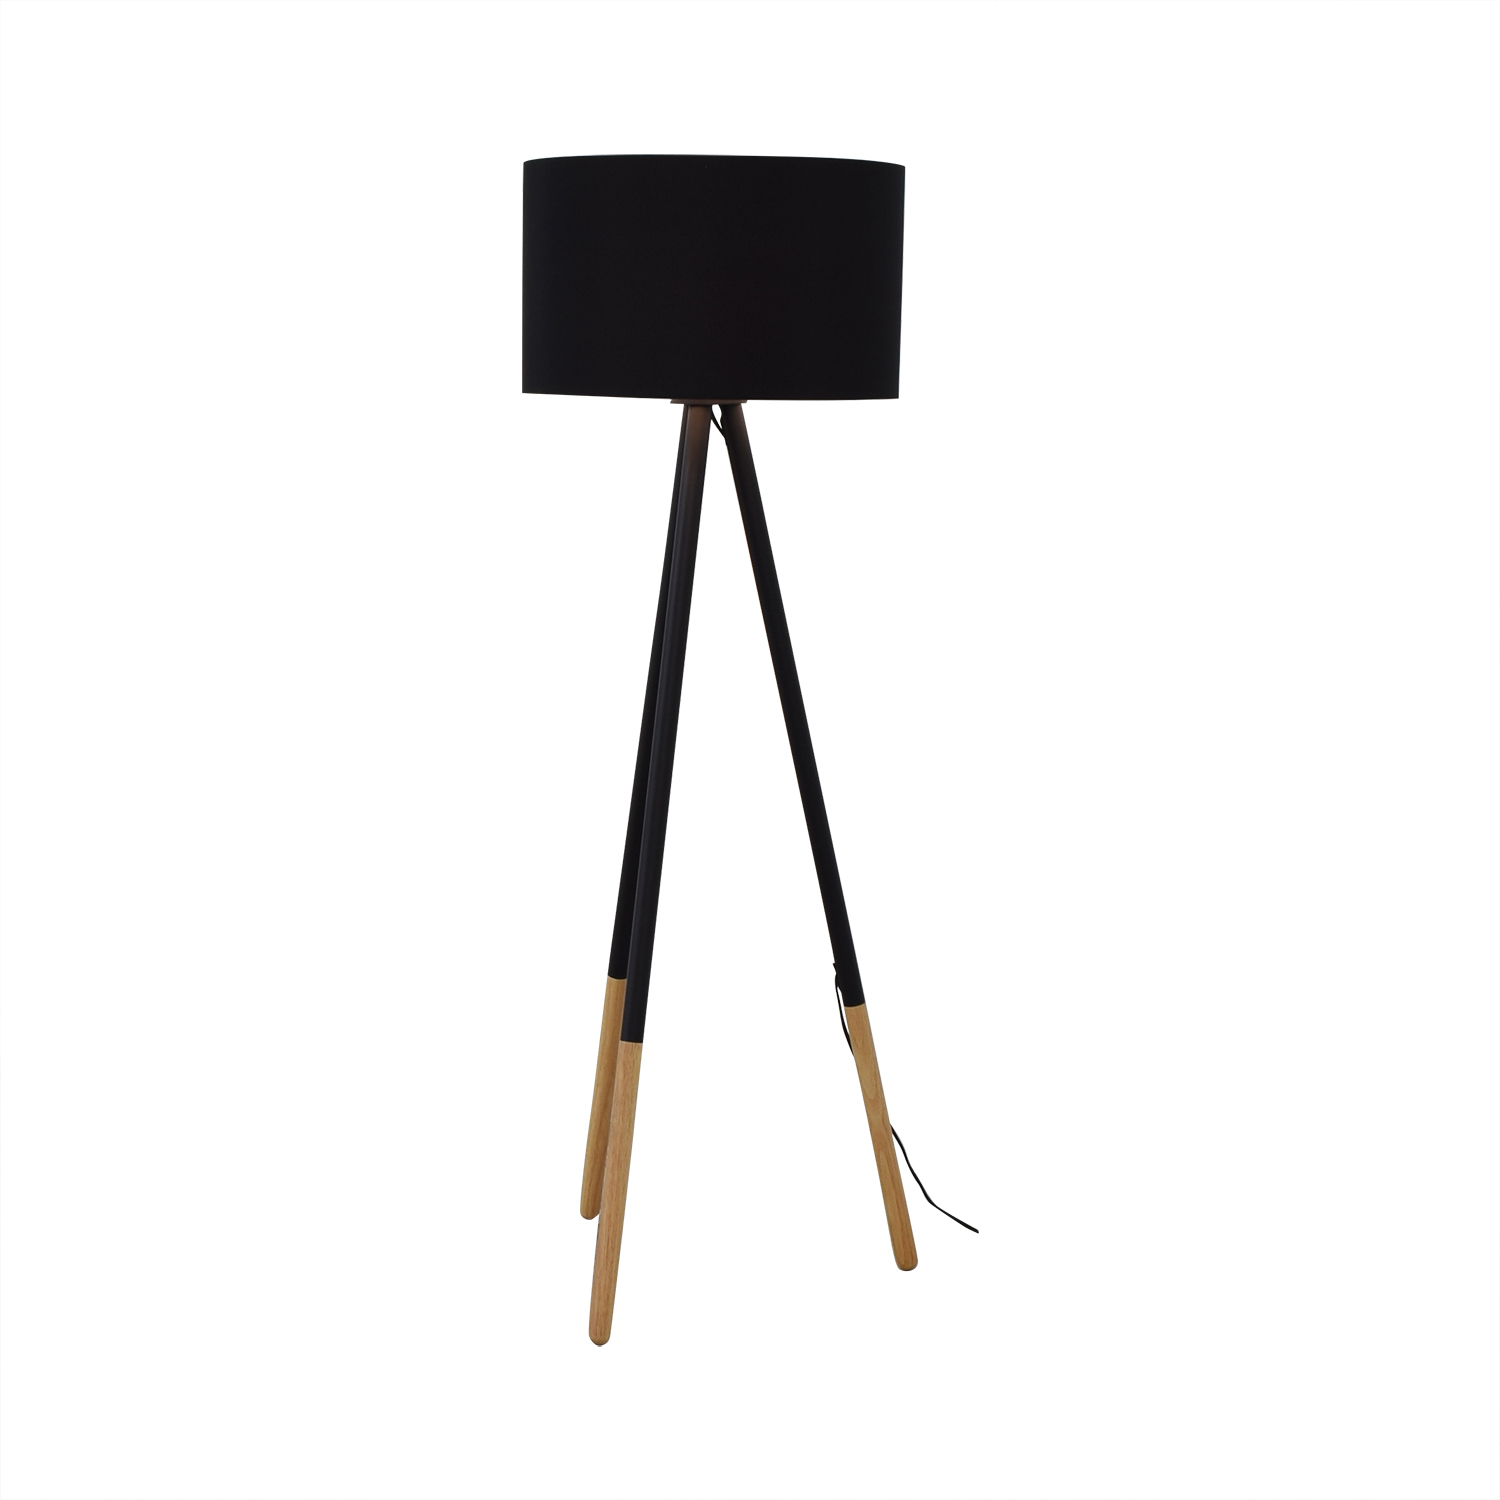 AllModern AllModern Louise Tripod Floor Lamp second hand